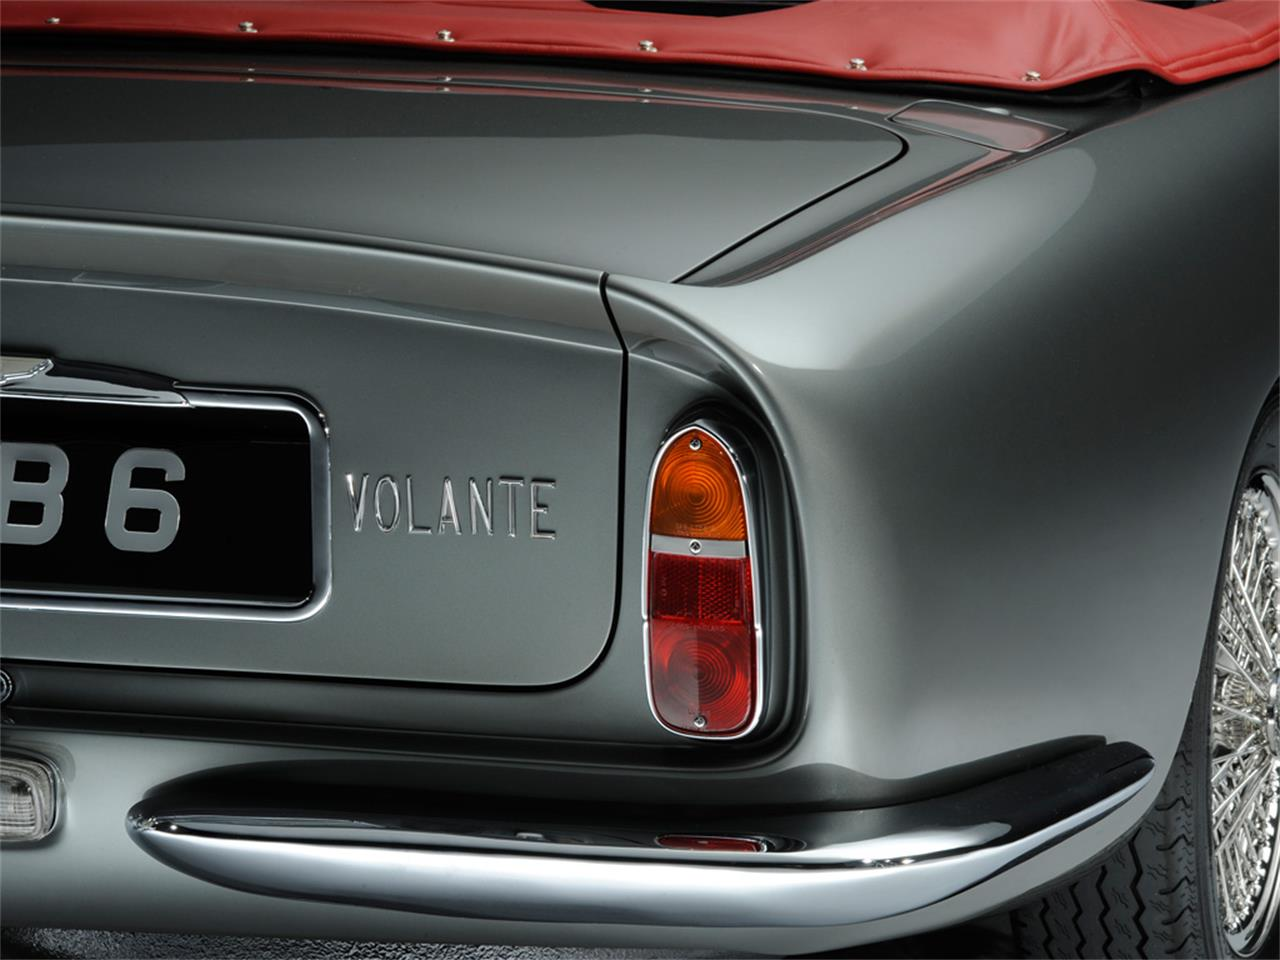 Large Picture of 1967 DB6 MKI Vantage Volante located in Maldon, Essex  Auction Vehicle Offered by JD Classics LTD - IVCB